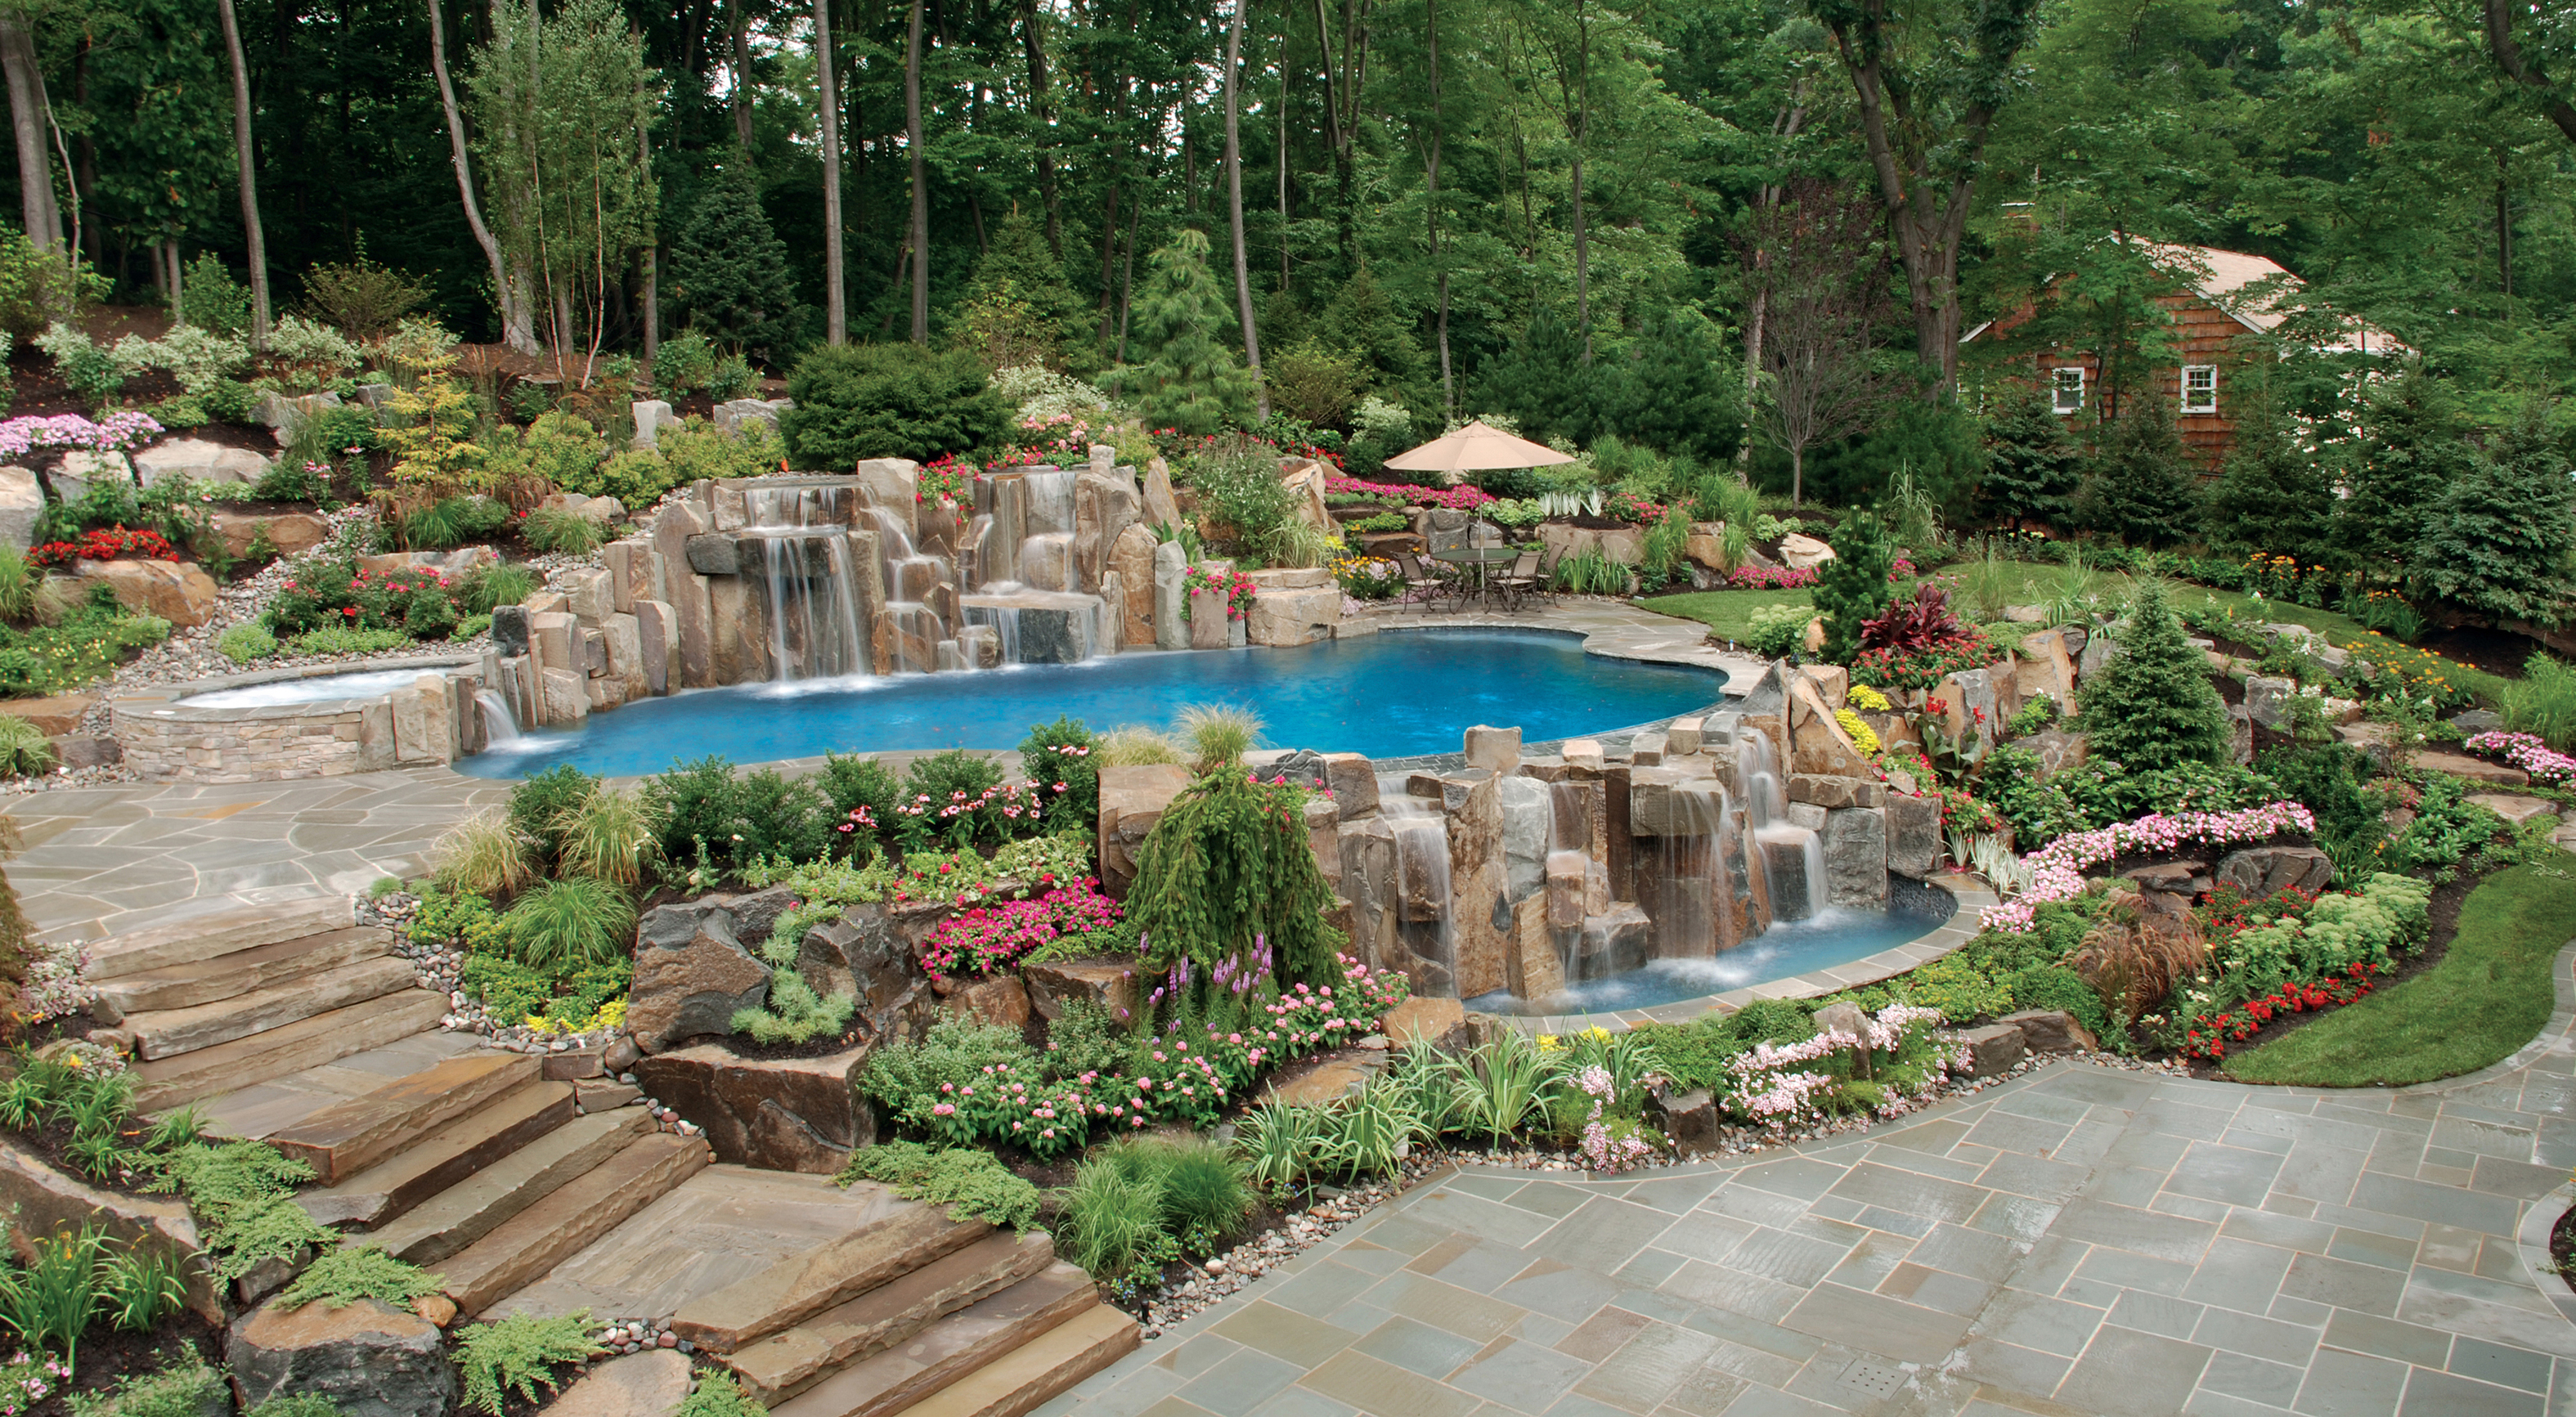 Backyard hardscape designs - large and beautiful photos. Photo to ...